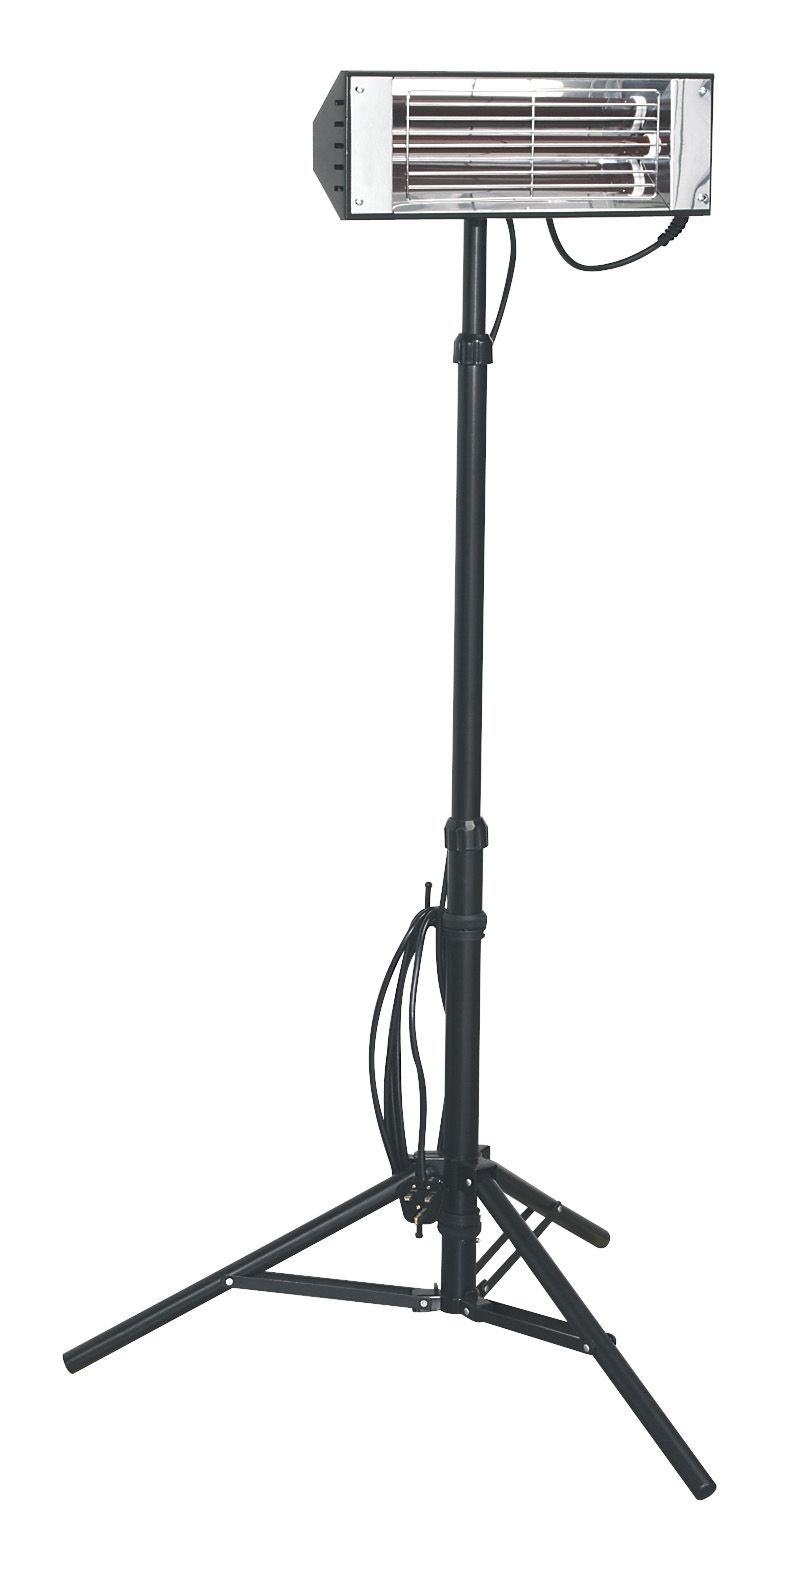 Sealey LP1500 1.5kW Infrared Heater With Telescopic Tripod Stand 230v